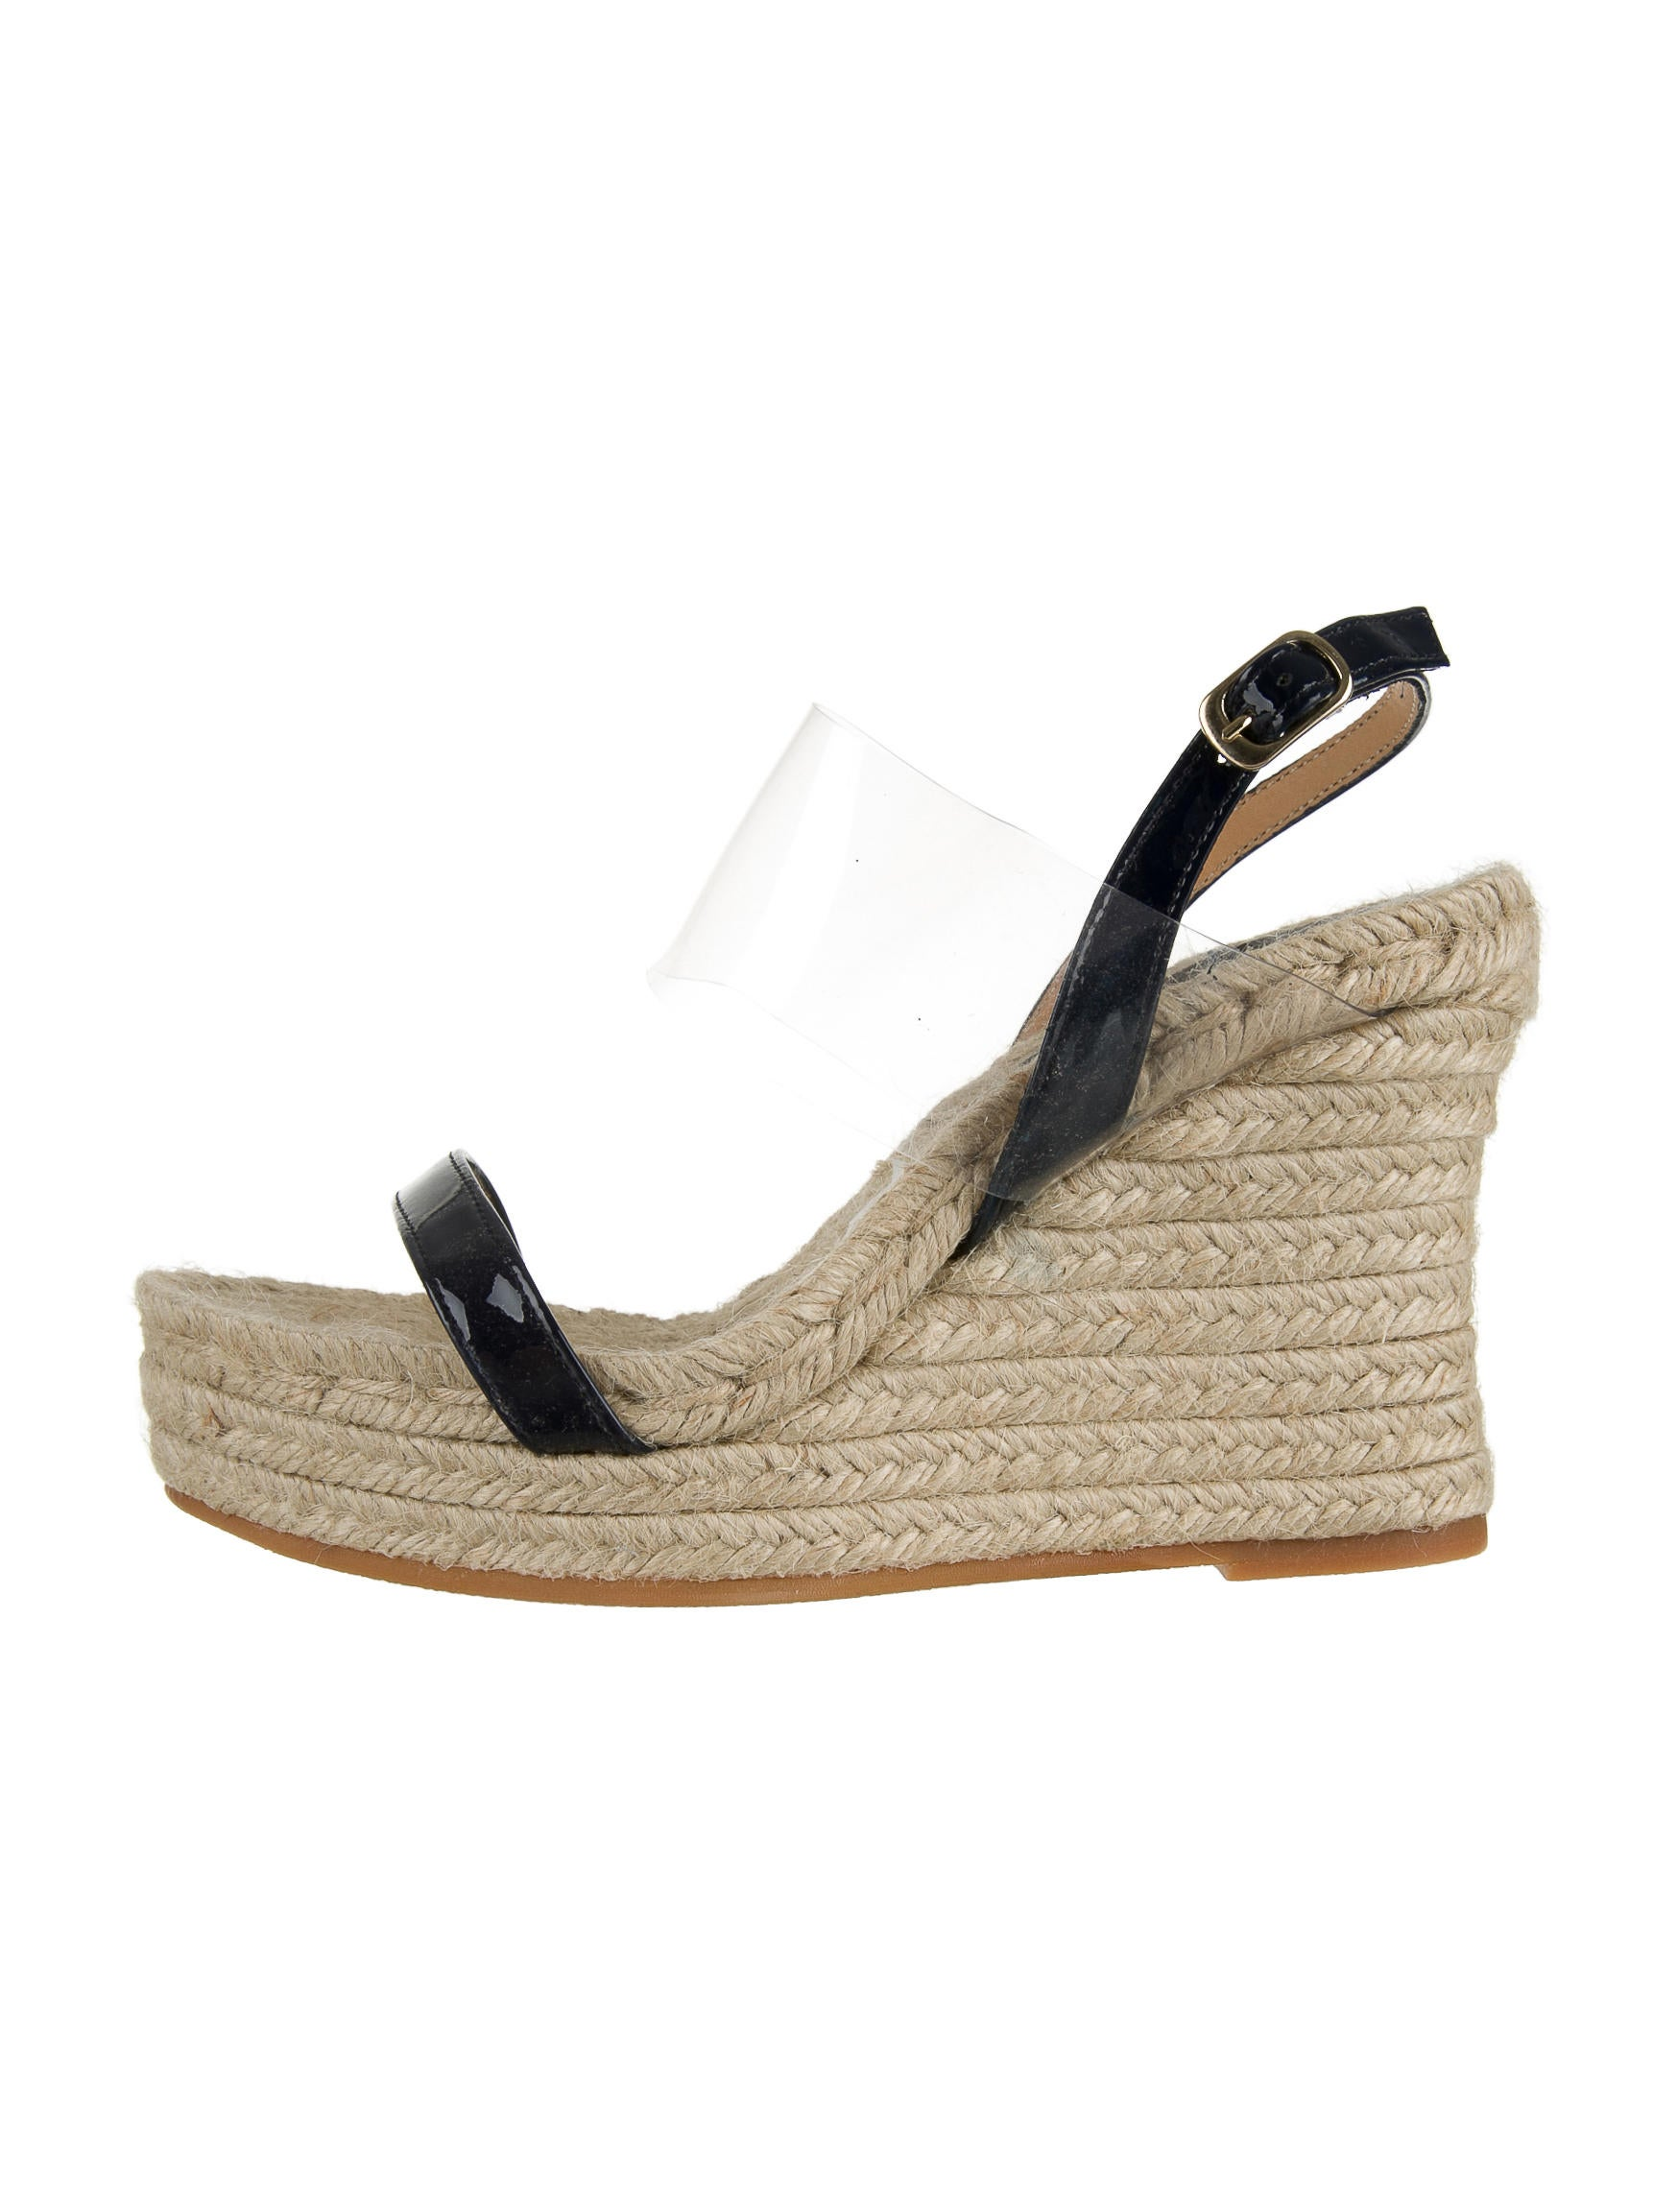 Bettye Muller Leather Wedge Sandals w/ Tags free shipping cheap online ZM2UkuPjLQ